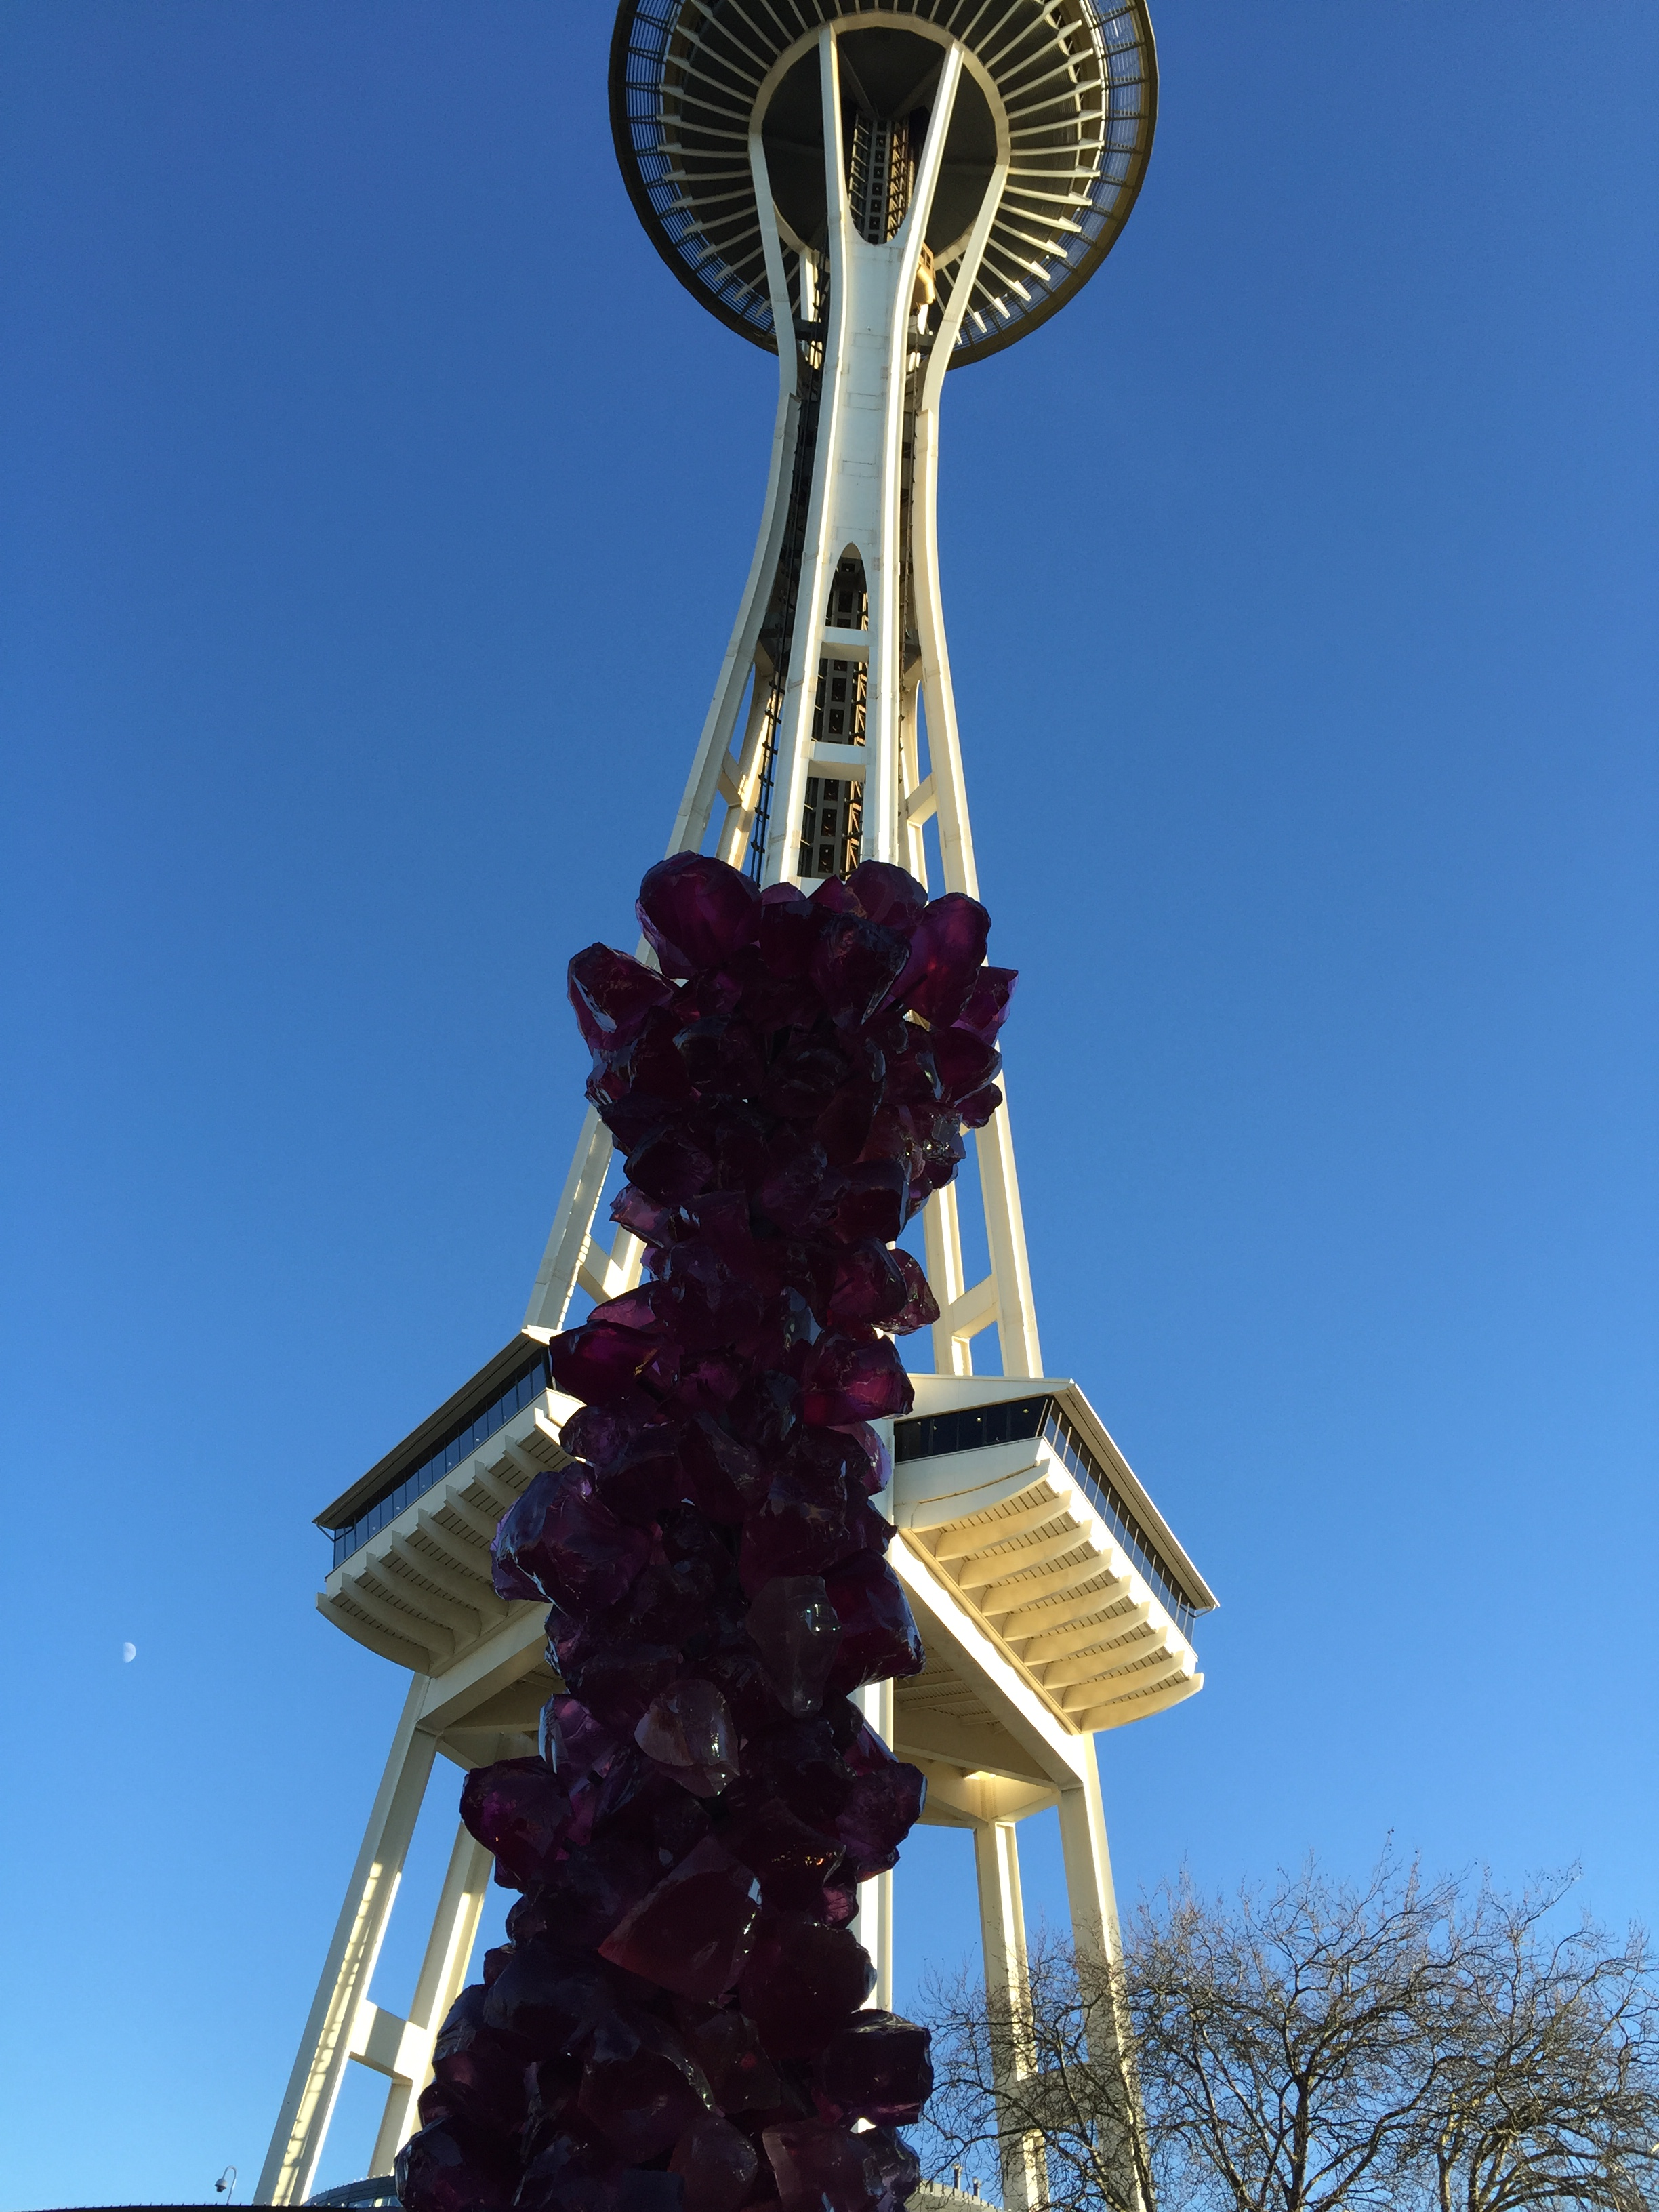 In the shadow of the Space Needle